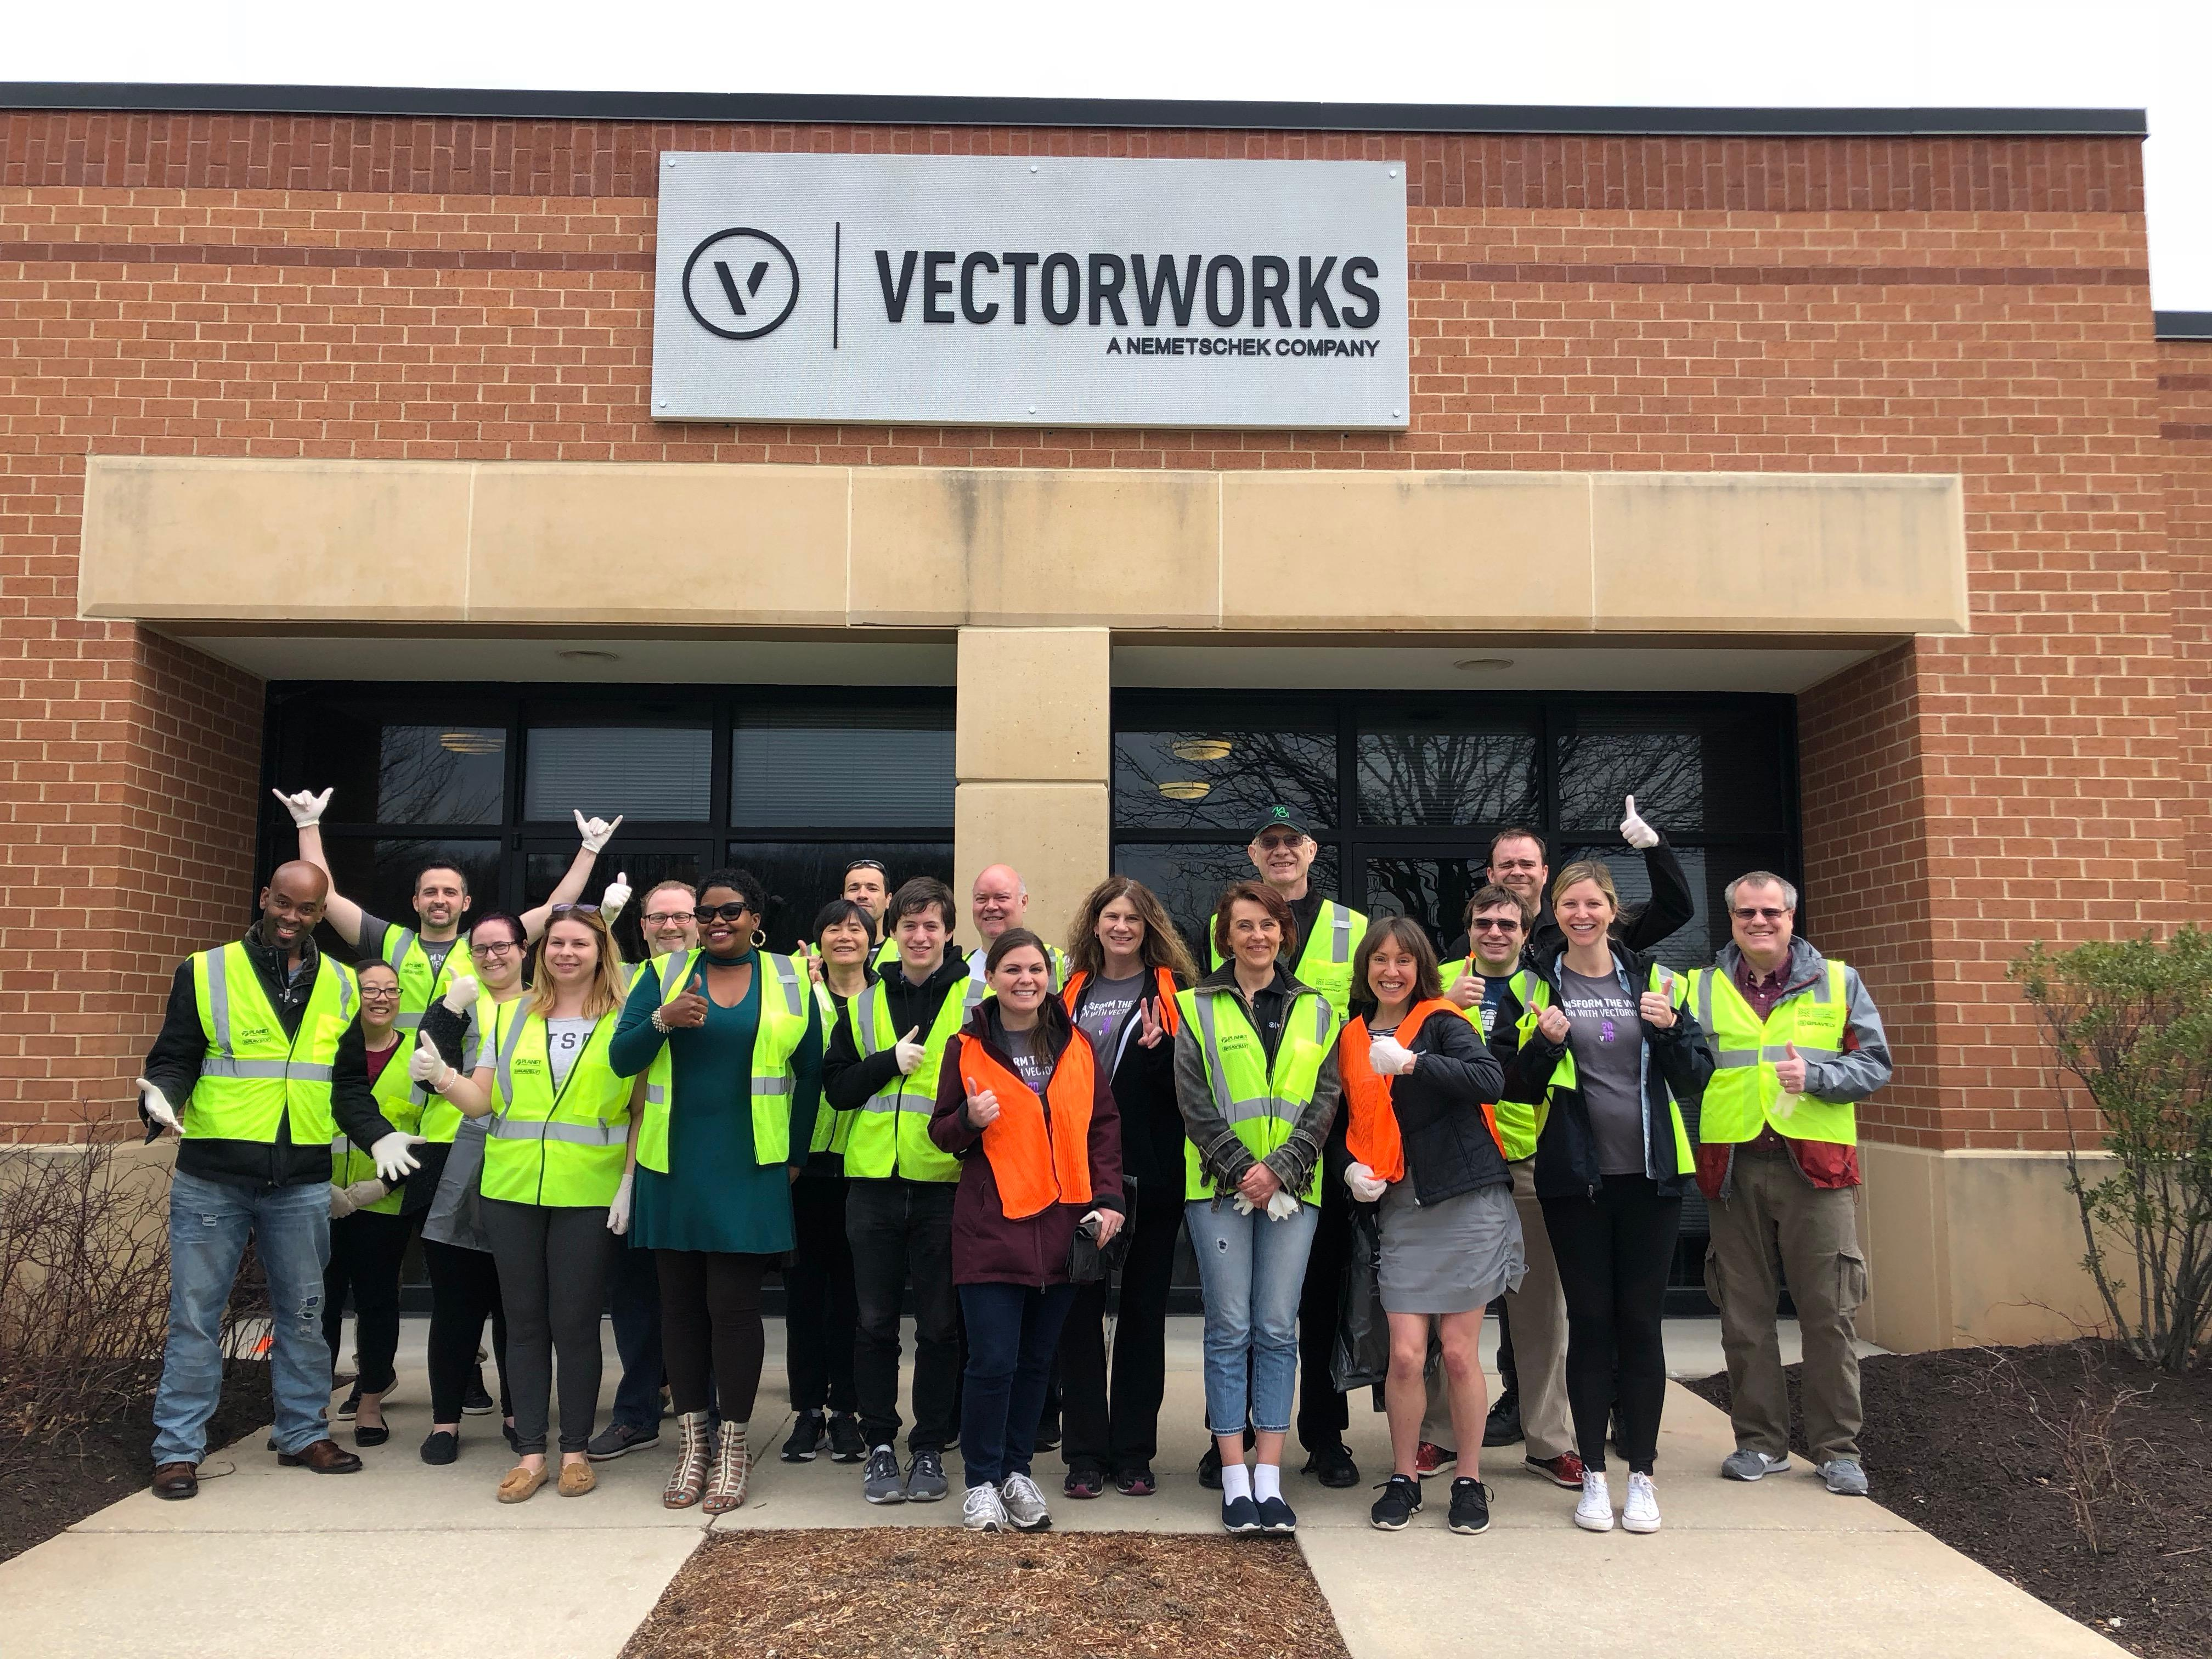 Vectorworks Employees Get Down and Dirty Honoring Earth Day